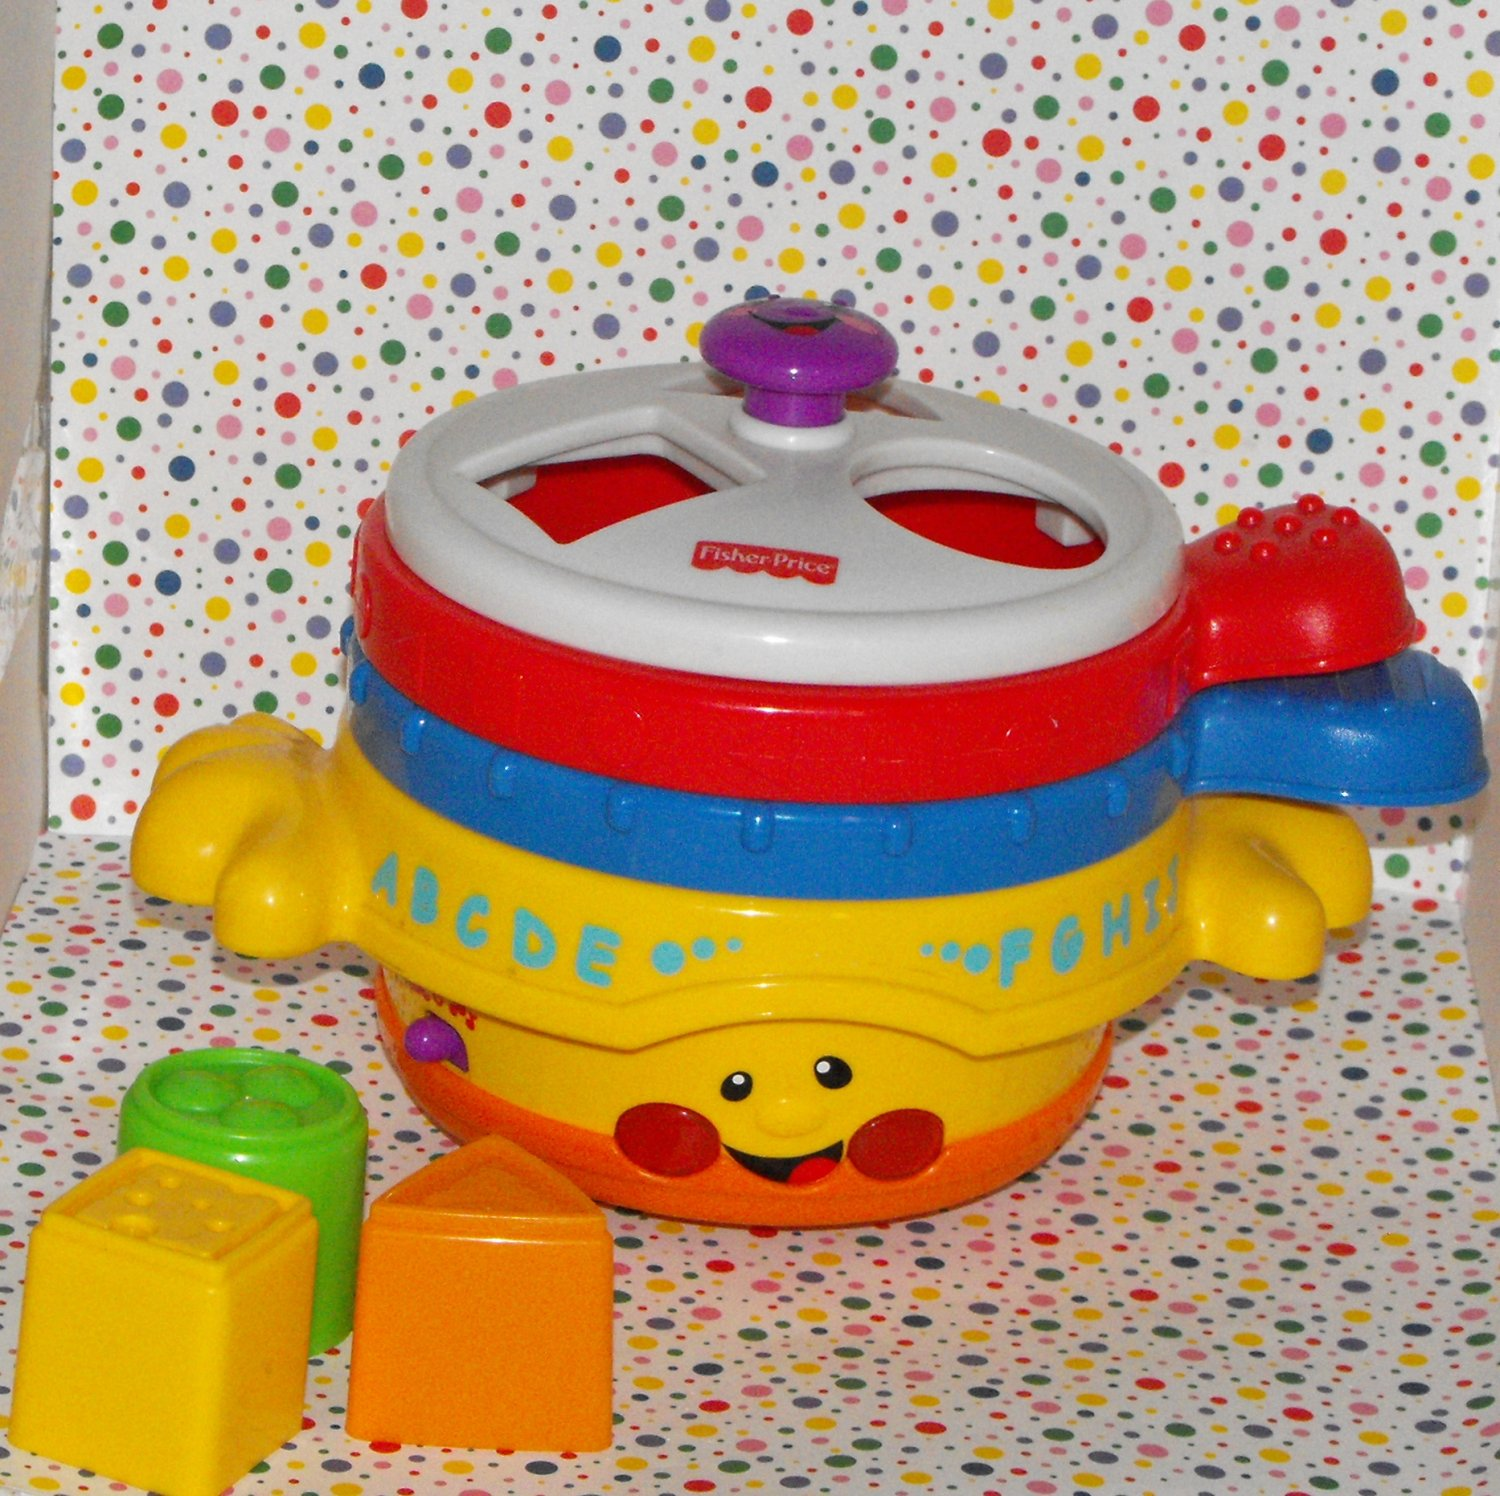 Fisher-Price Learning Pots and Pans Toy